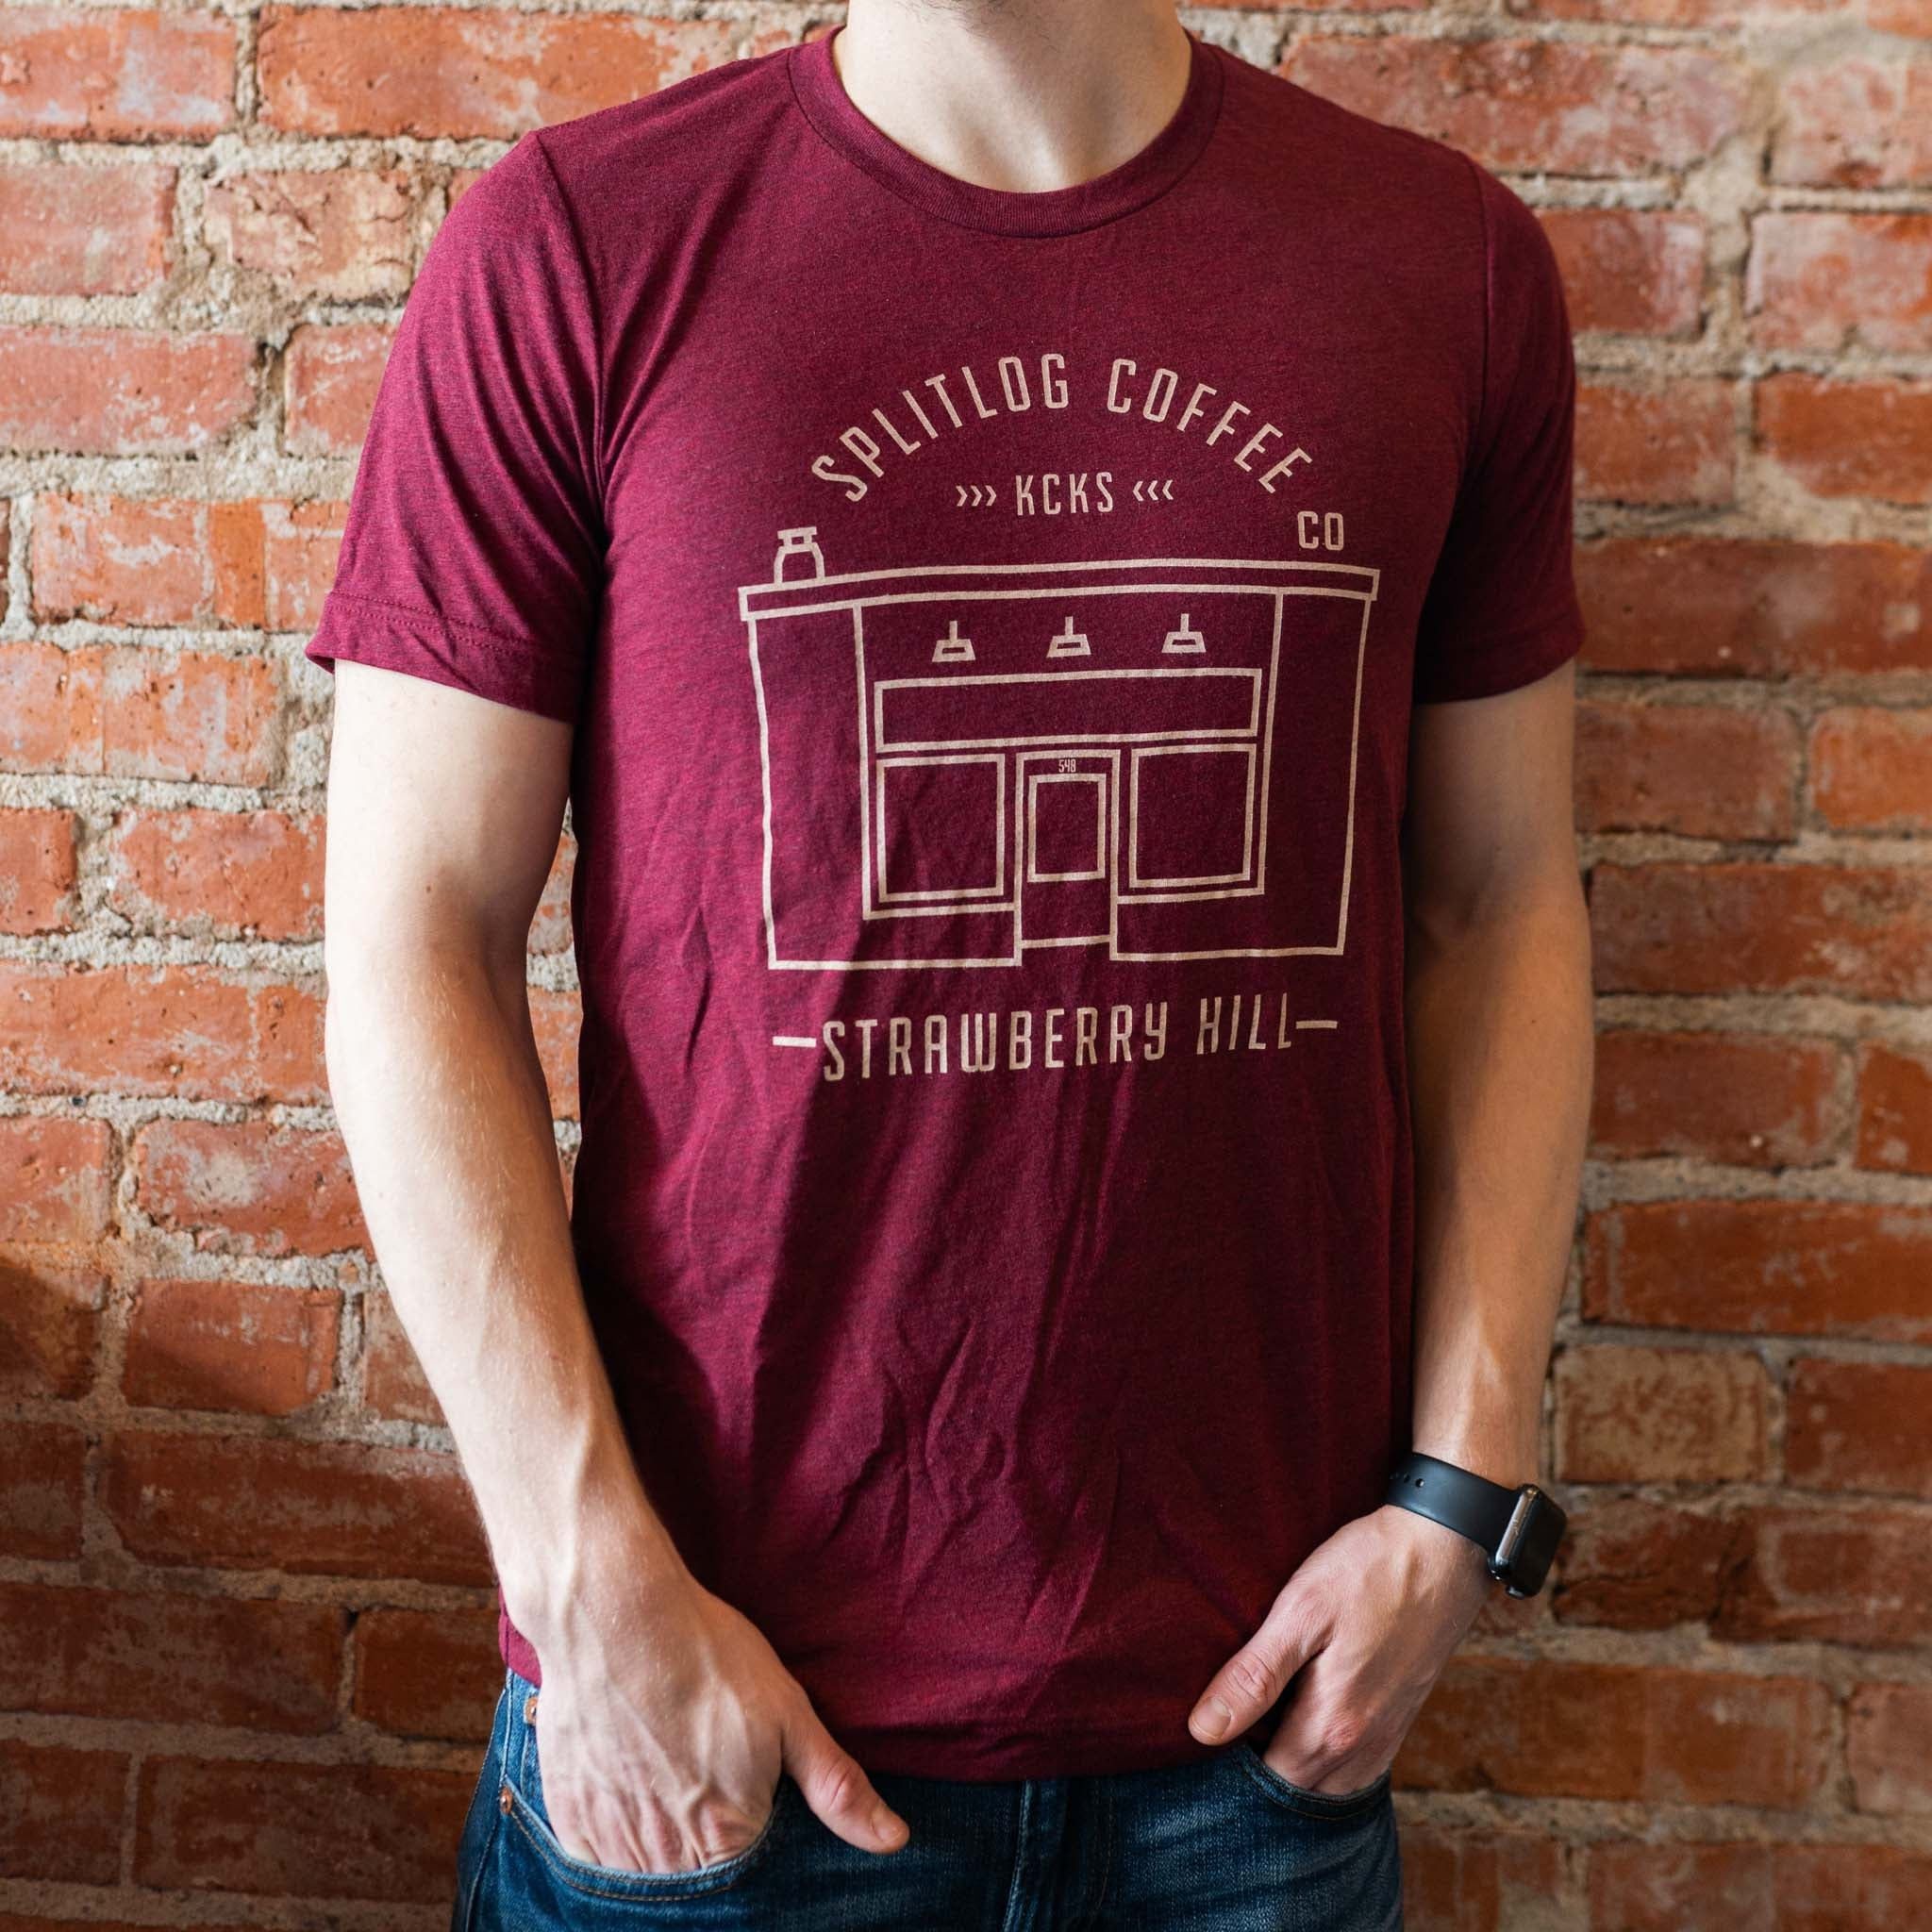 Heathered Maroon Bella Canvas Triblend T-shirt with the minimal Strawberry Hill Storefront design across the front.   True to size.  50% Polyester 25% Algodon 25% Rayon